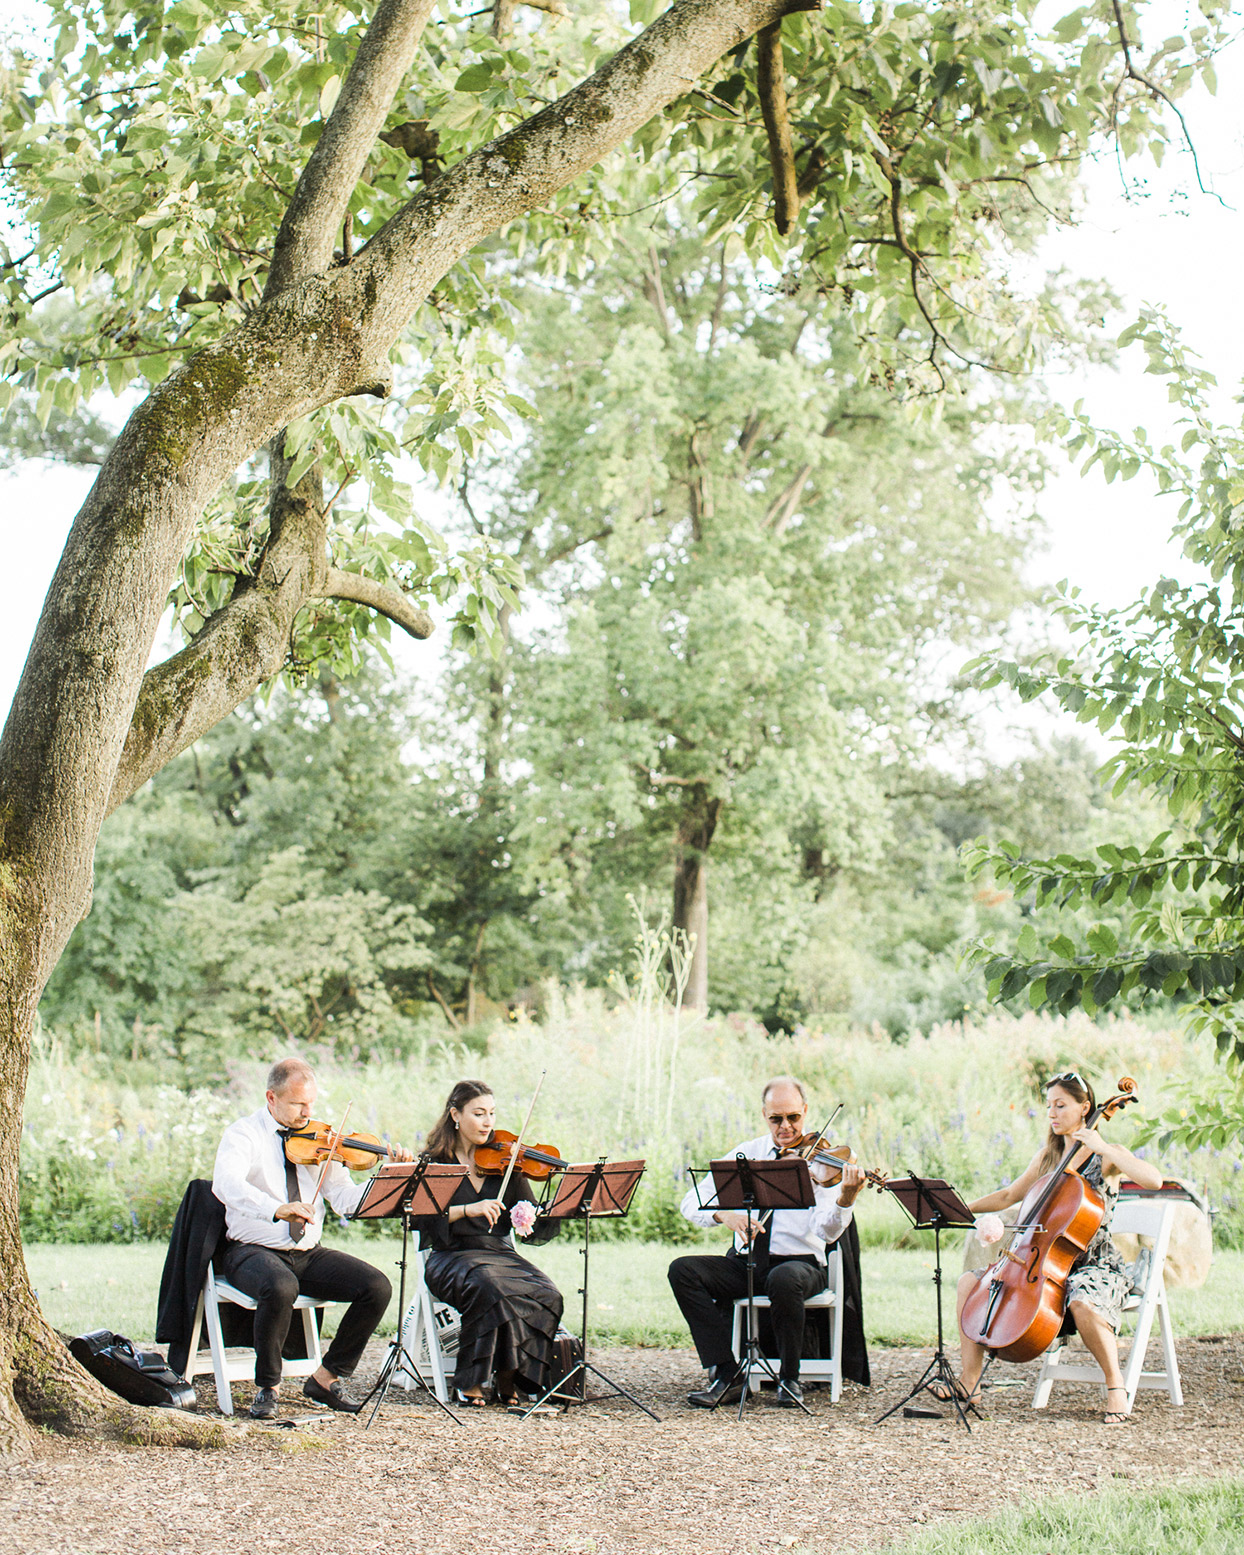 grace john wedding string quartet playing under tree